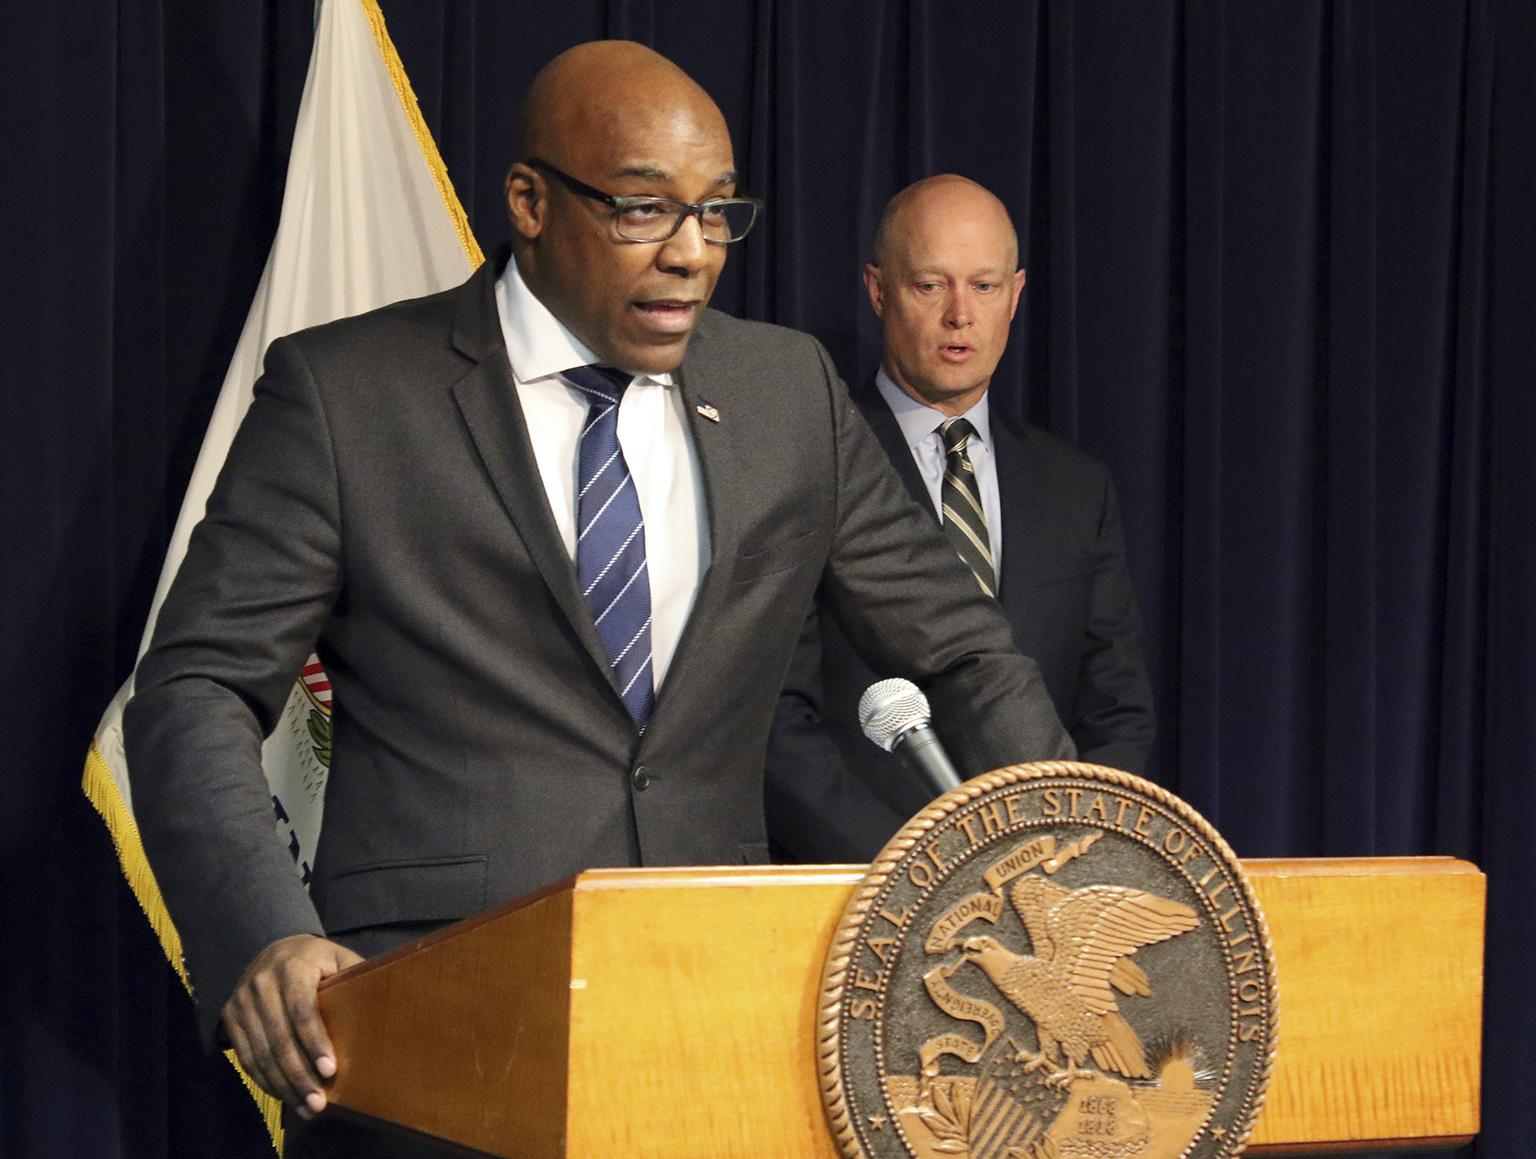 Attorney General Kwame Raoul, left, and Kane County State's Attorney Joseph McMahon speak during a news conference Monday, Feb. 11, 2019. (AP Photo / Noreen Nasir)